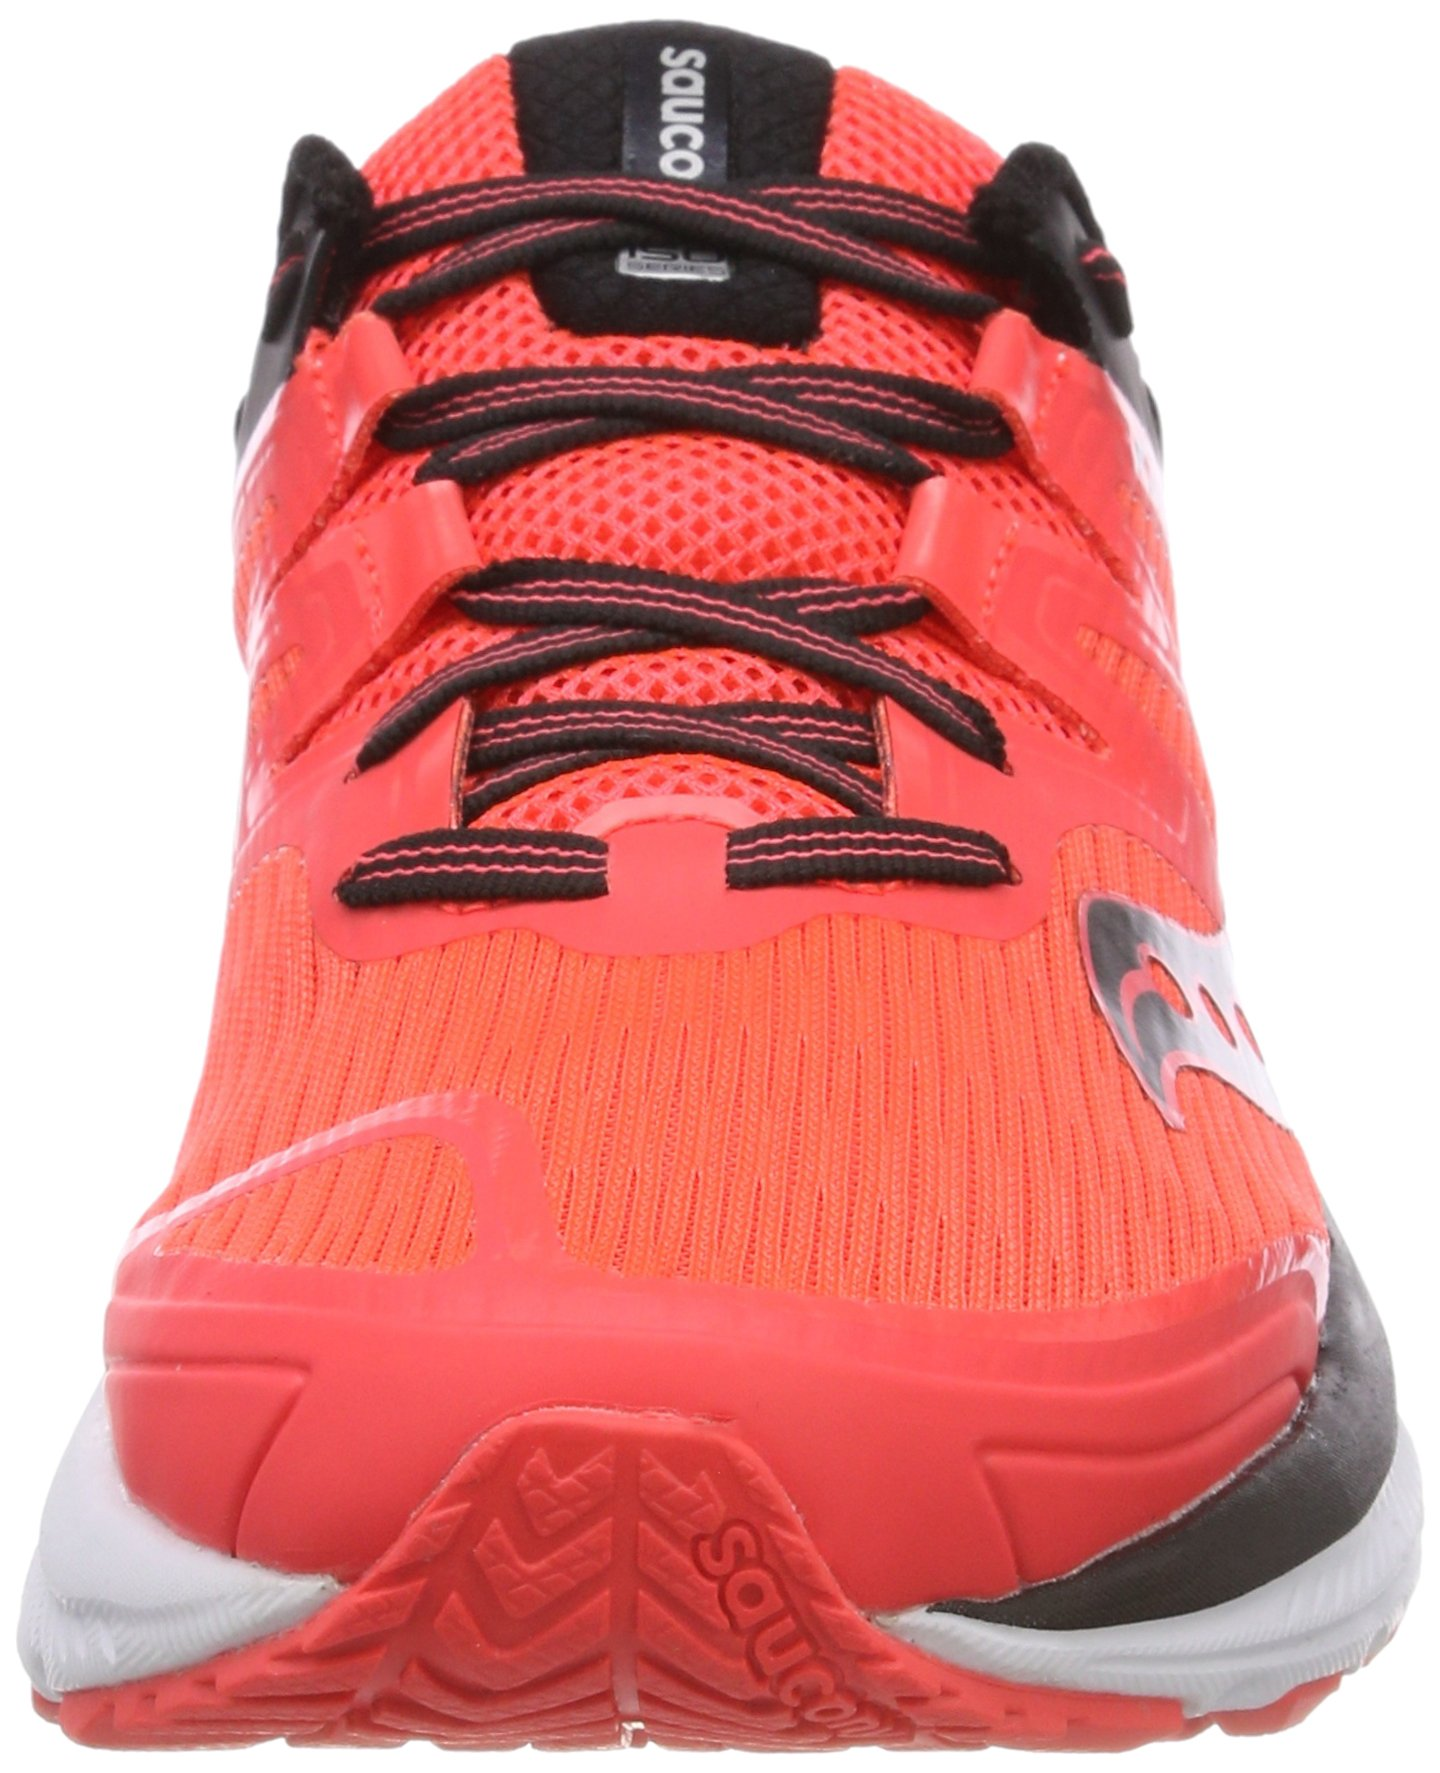 81A1r%2B8Hw6L - Saucony Women's Guide Iso Competition Running Shoes